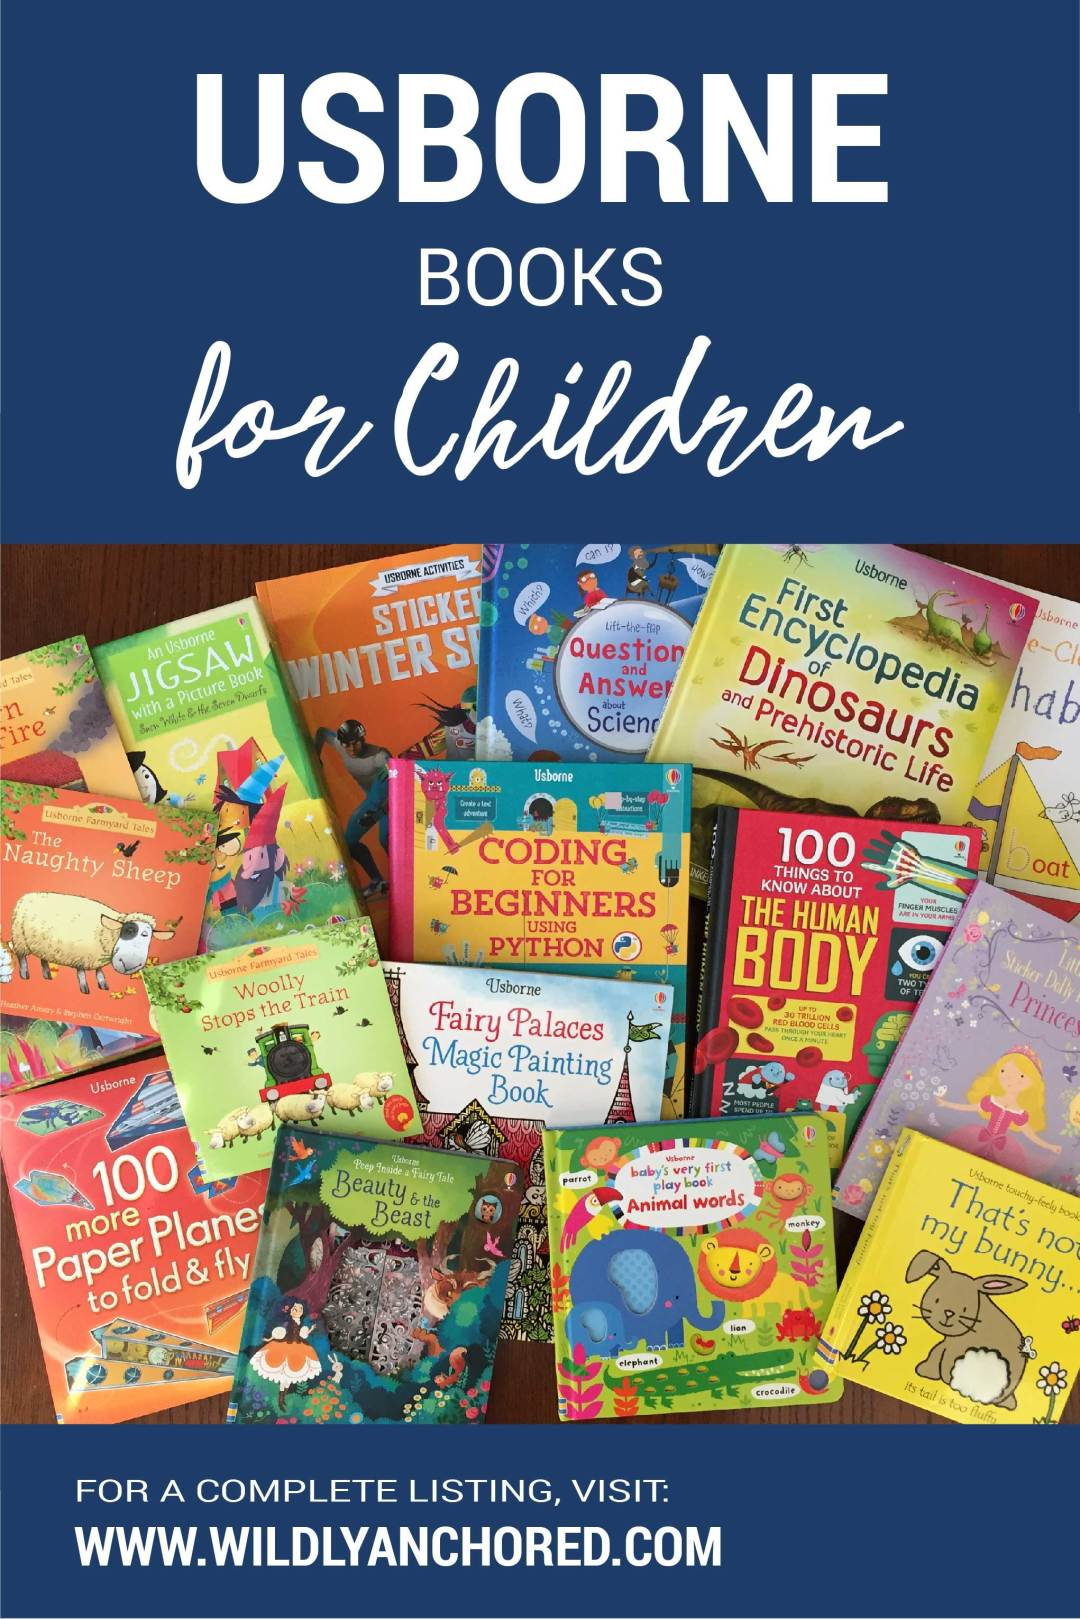 Find Usborne books for children, including a FREE My Reading List printable.